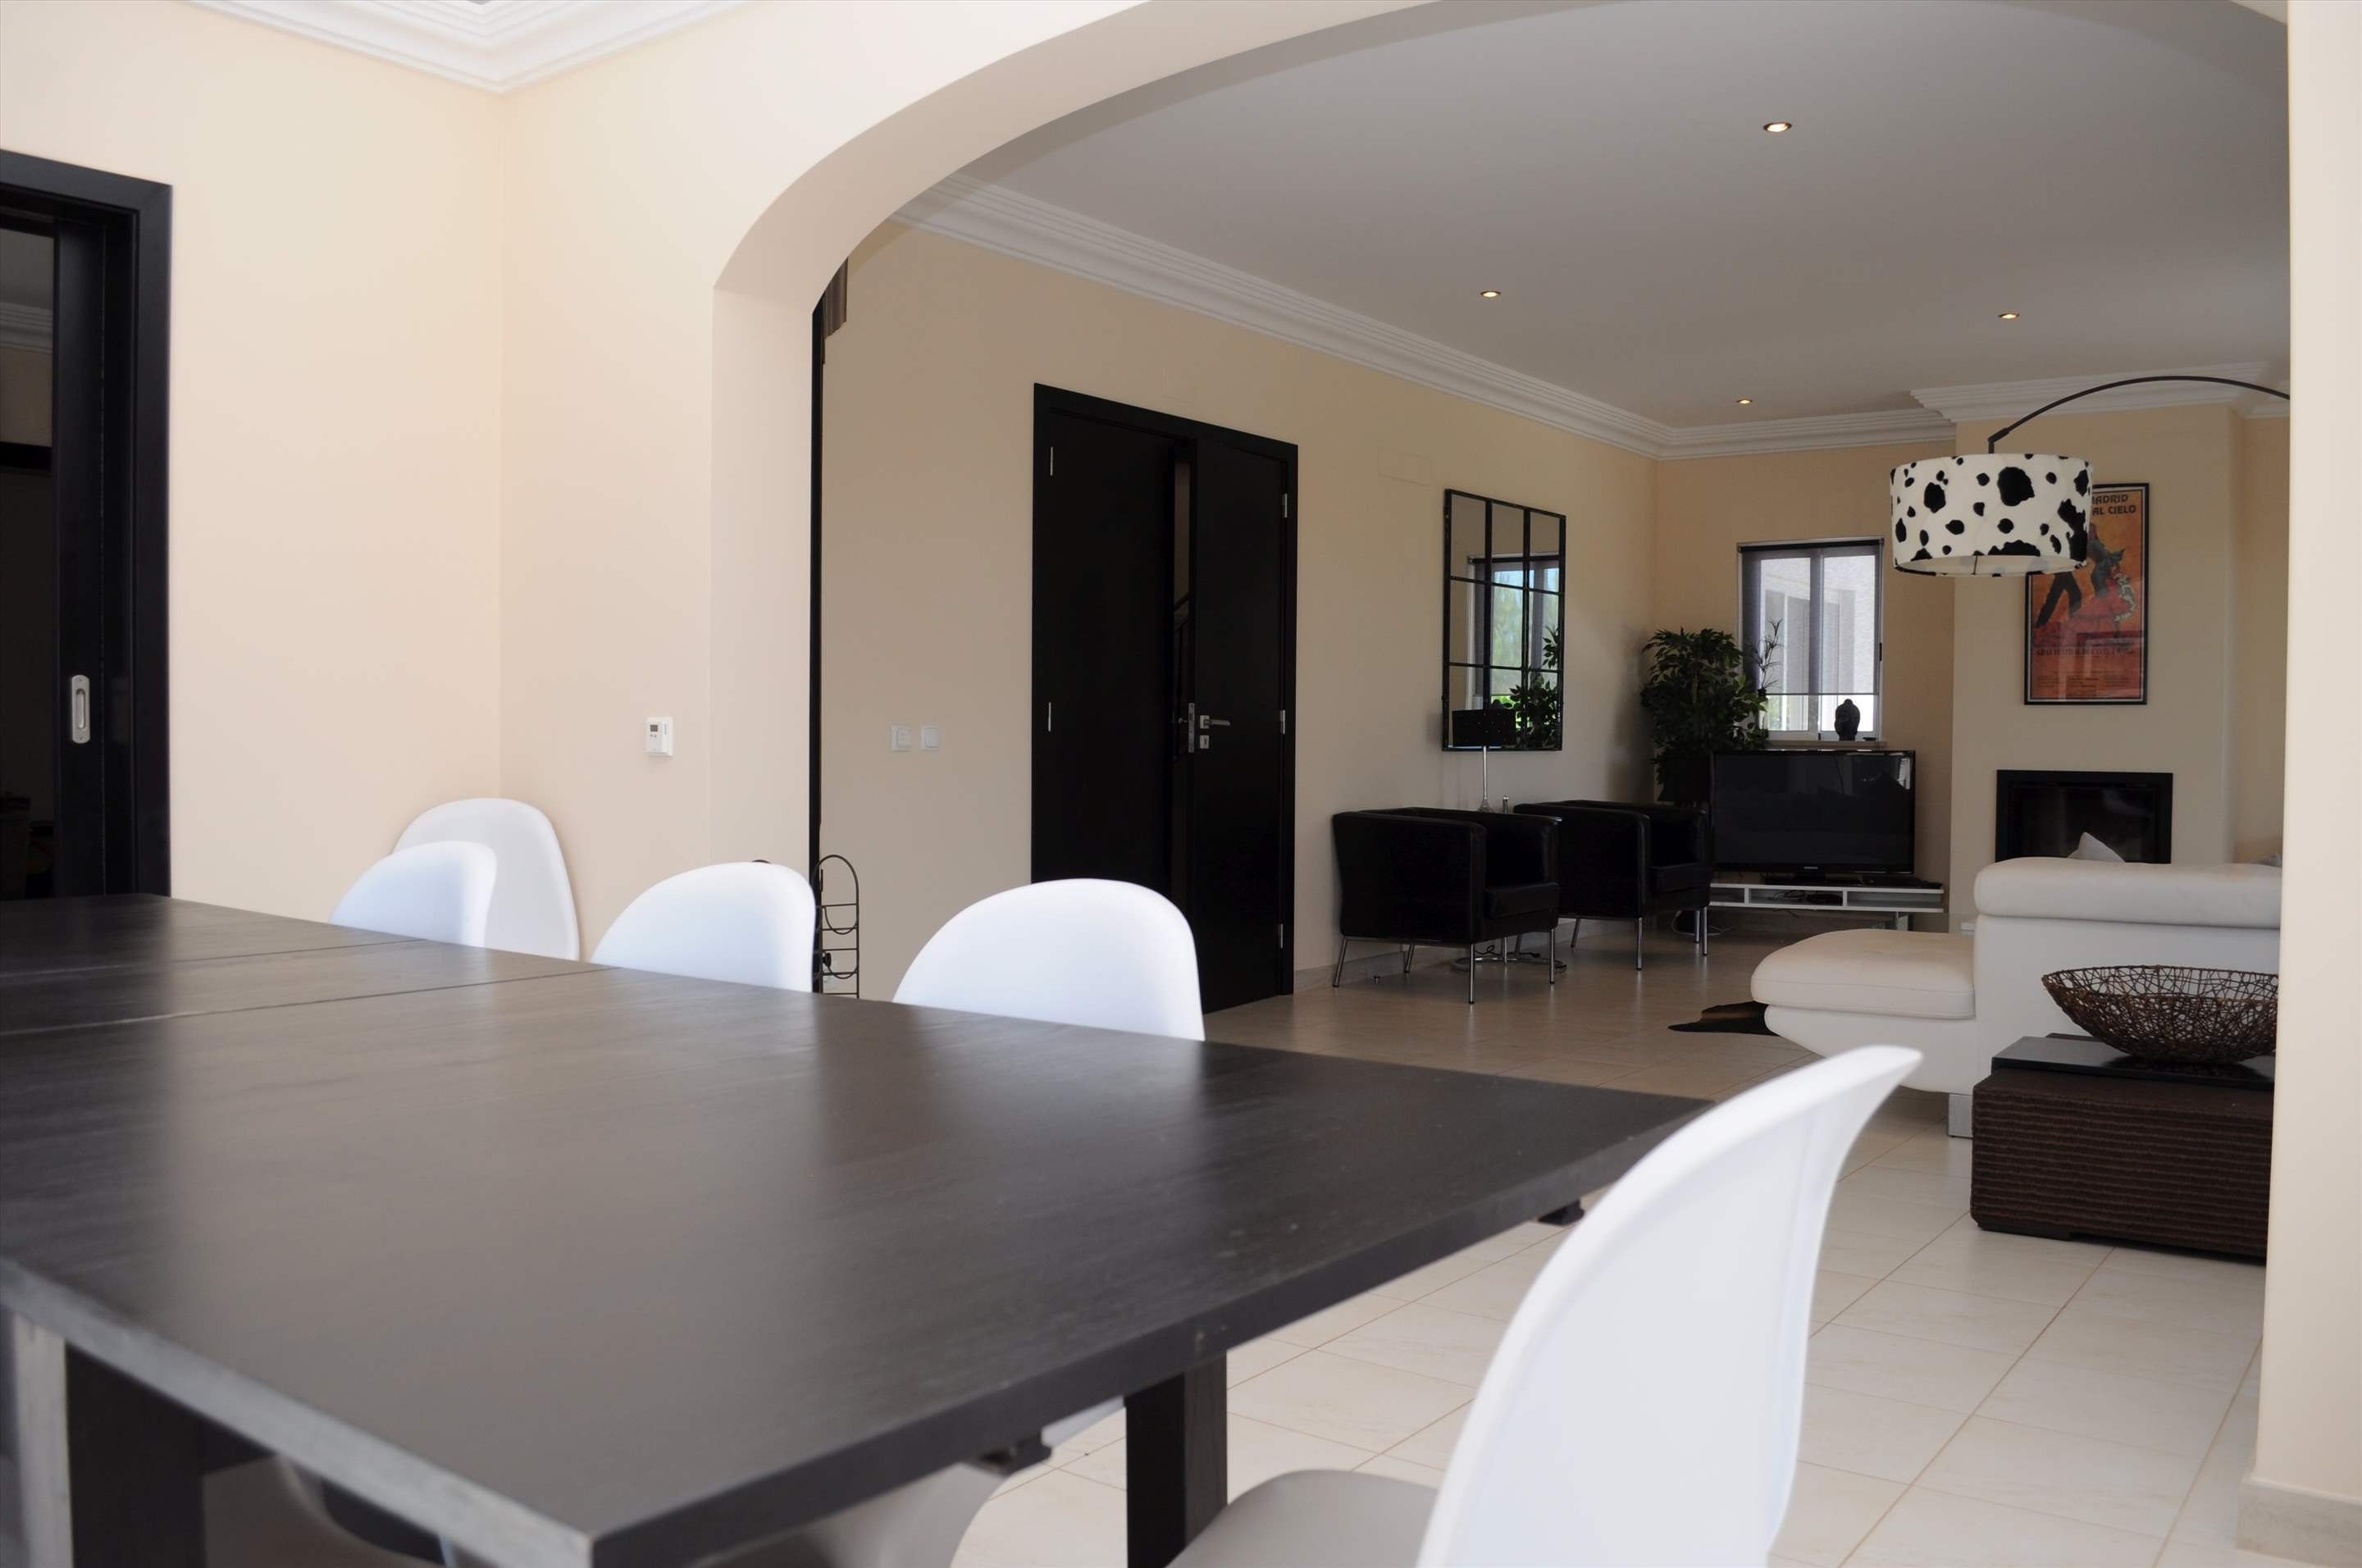 Martinhal Luxury Villa No.18, 5 bedroom villa in Martinhal Sagres, Algarve Photo #5